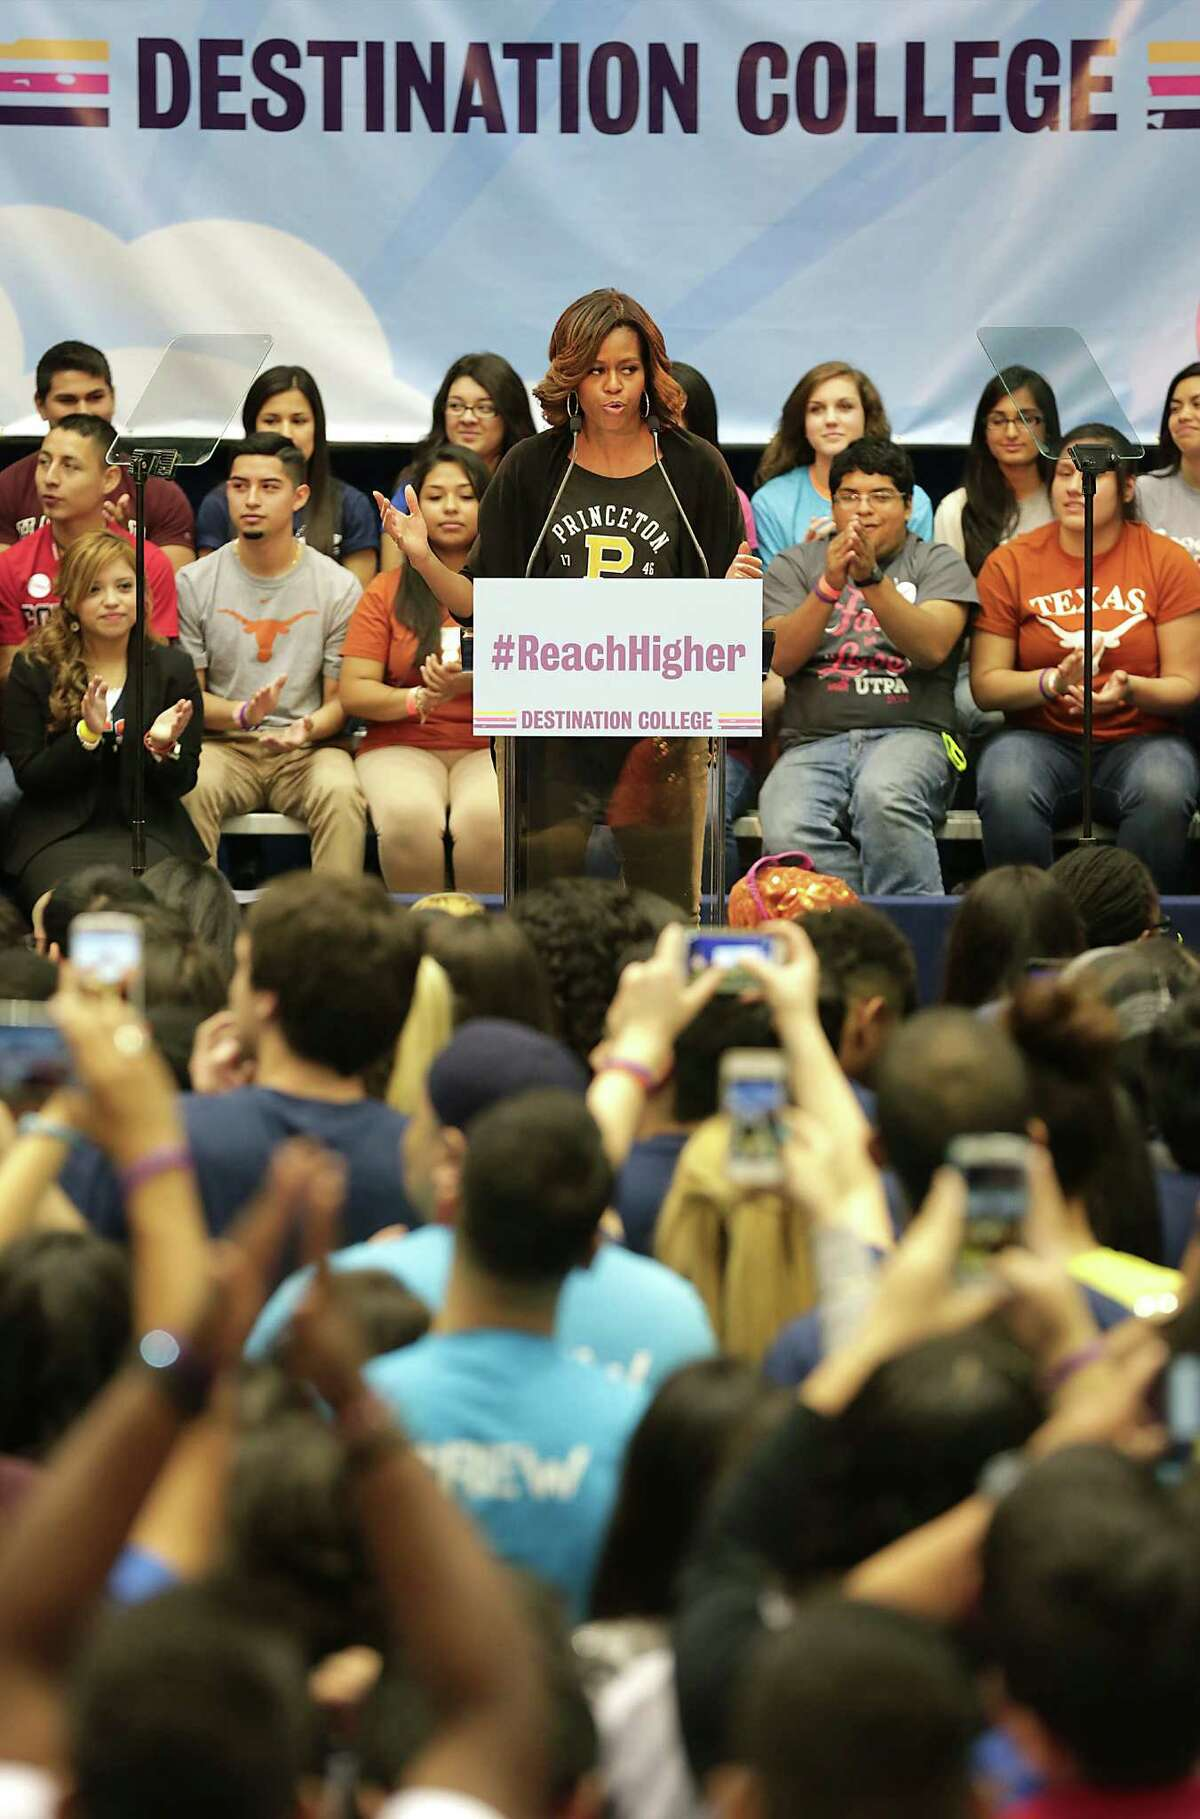 First Lady Michelle Obama speaks at Destination College: 4th Annual College Signing Day at The University of Texas at San Antonio's Convocation Center, Friday, May 2, 2014.